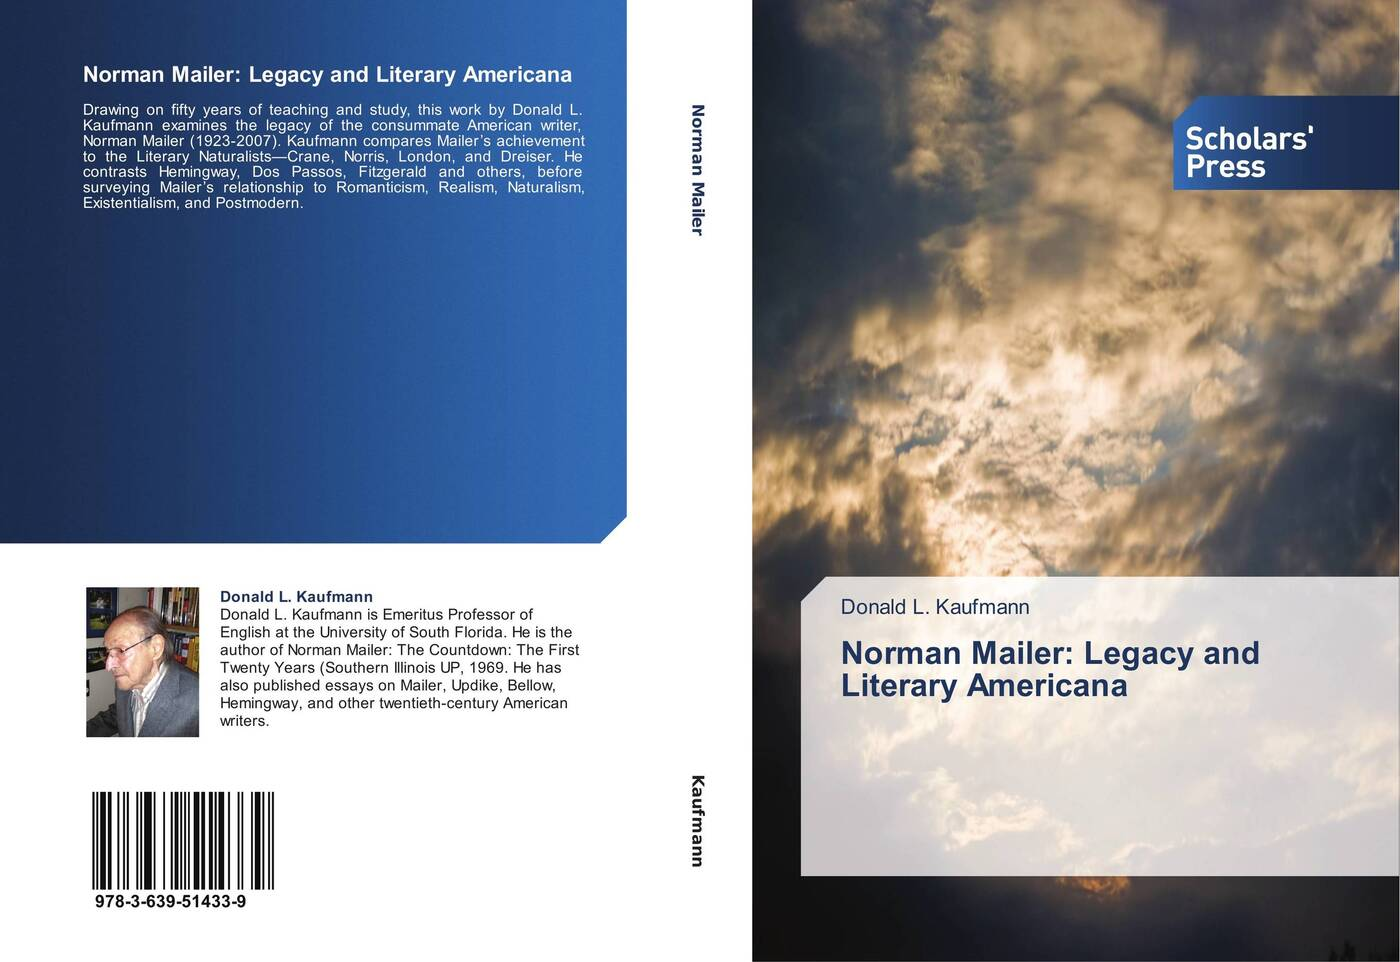 Donald L. Kaufmann Norman Mailer: Legacy and Literary Americana